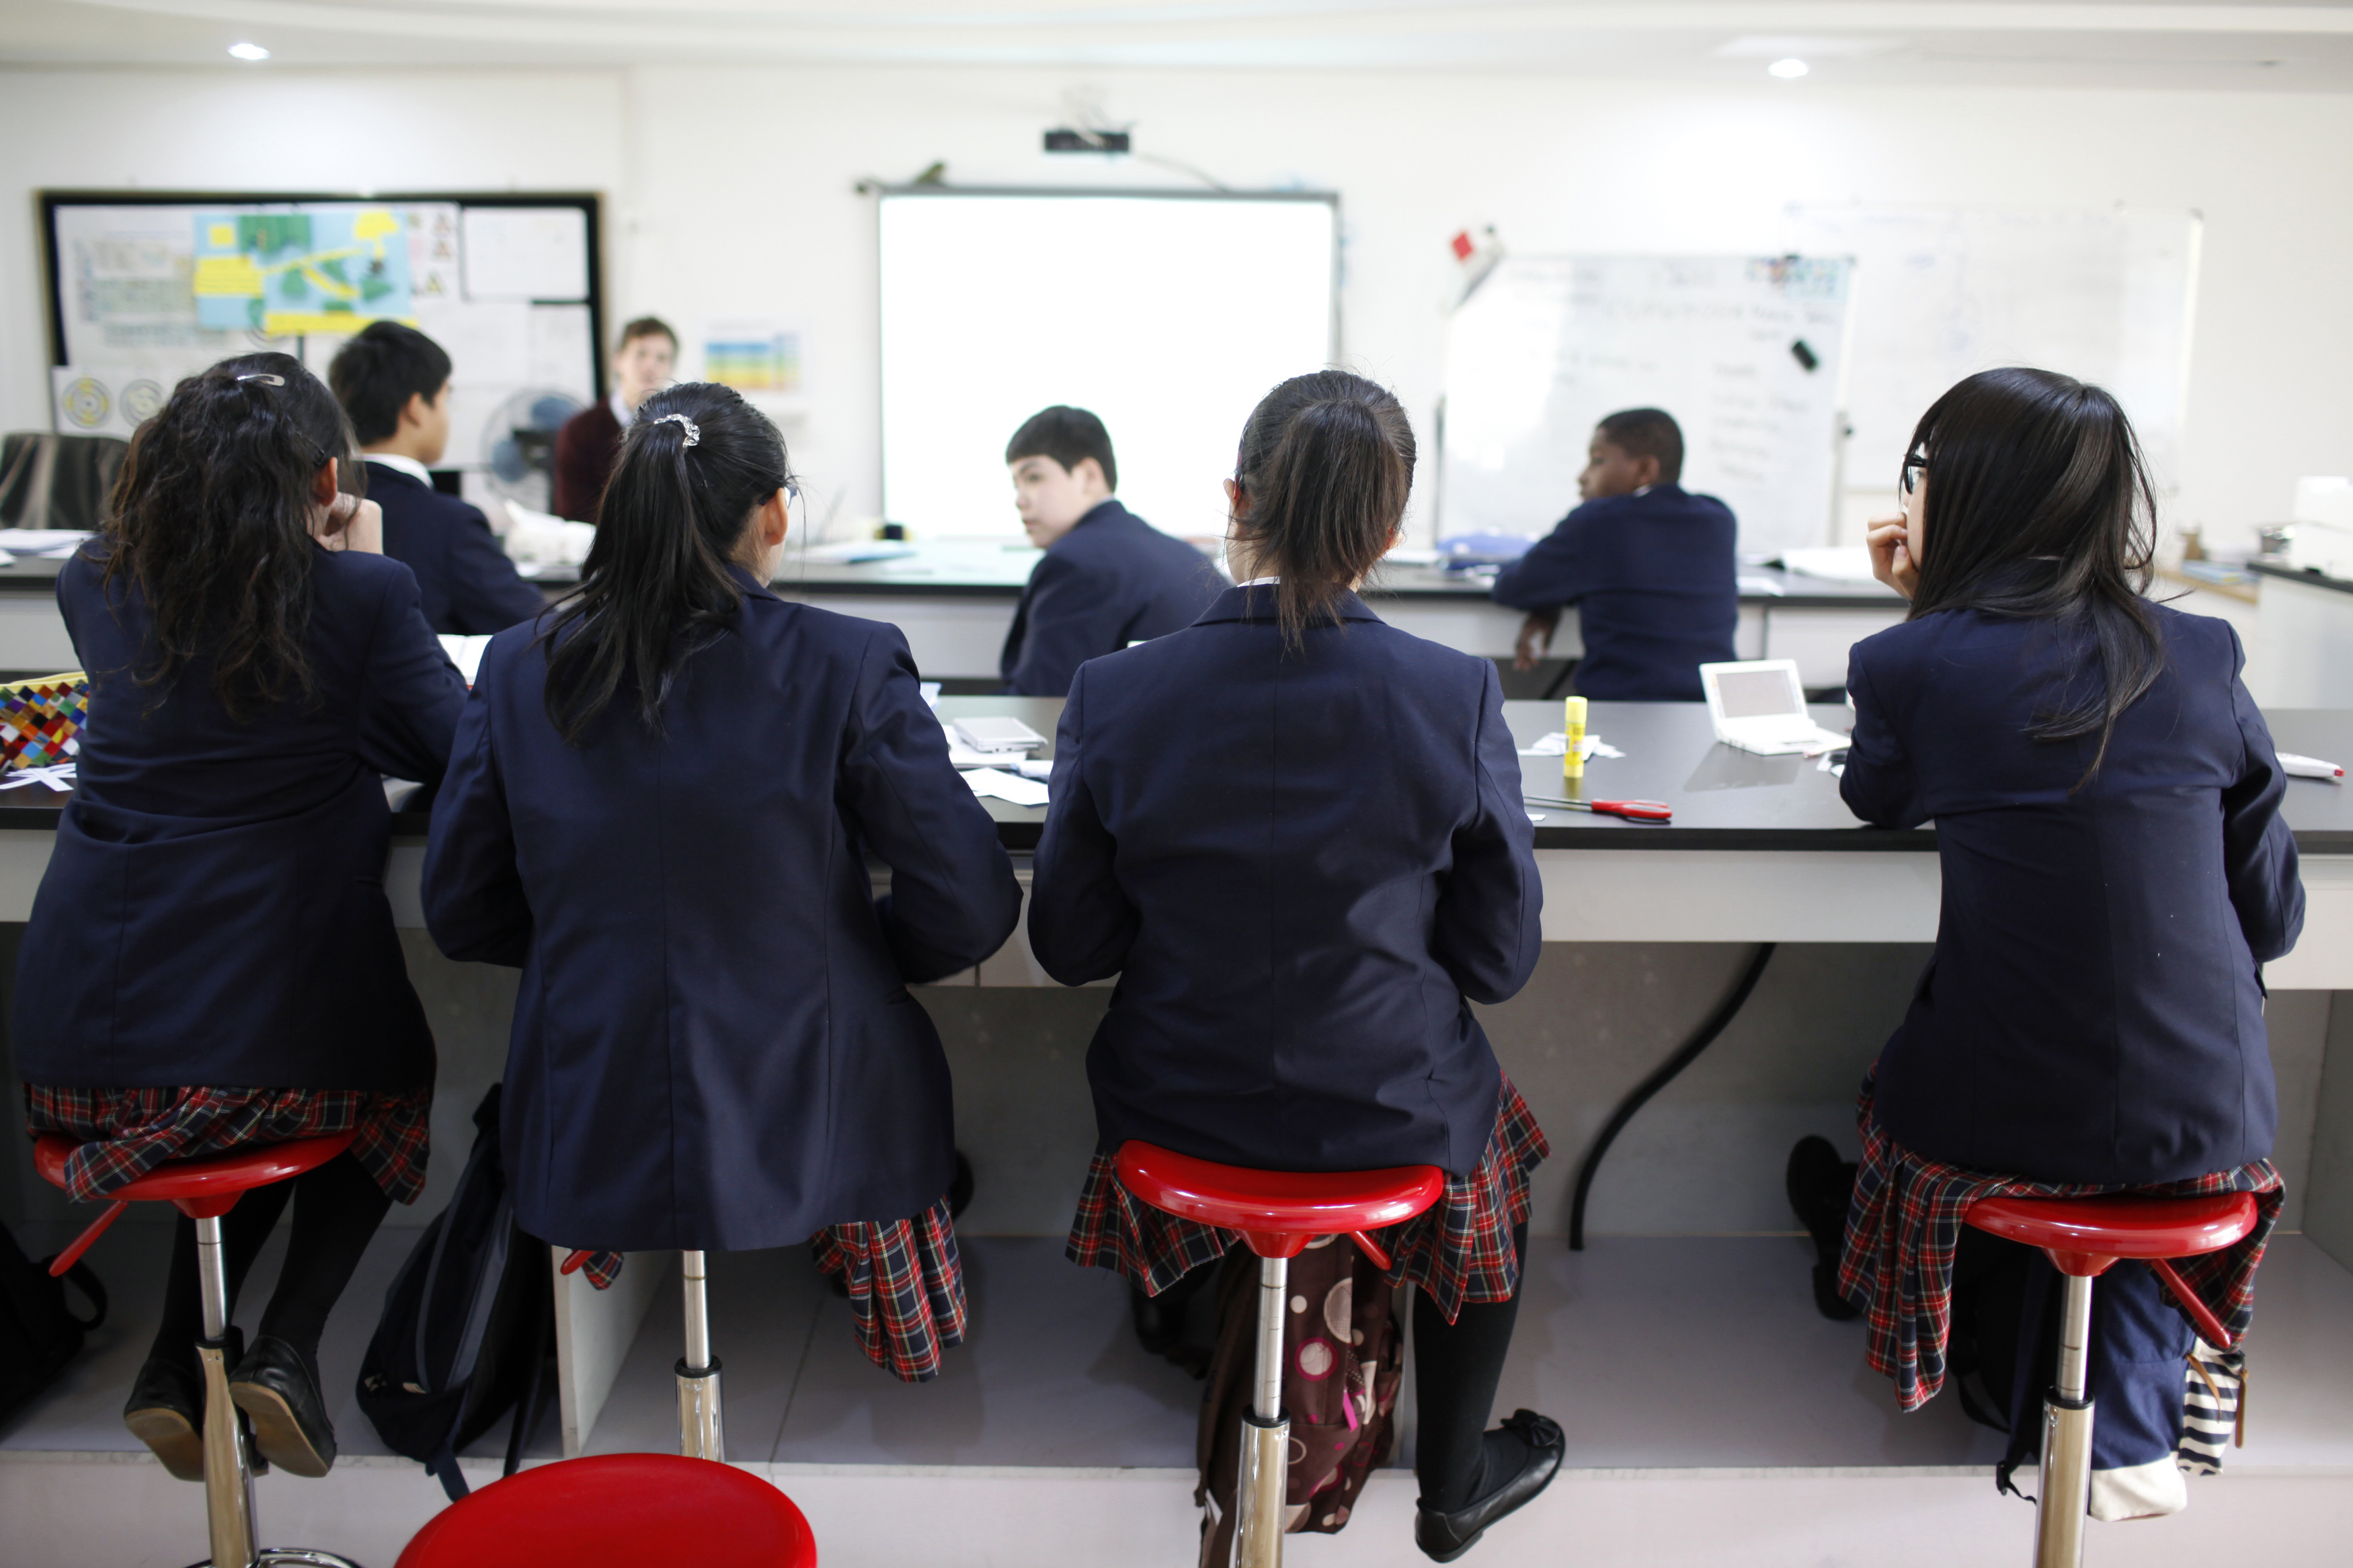 Private school students listen during lecture.